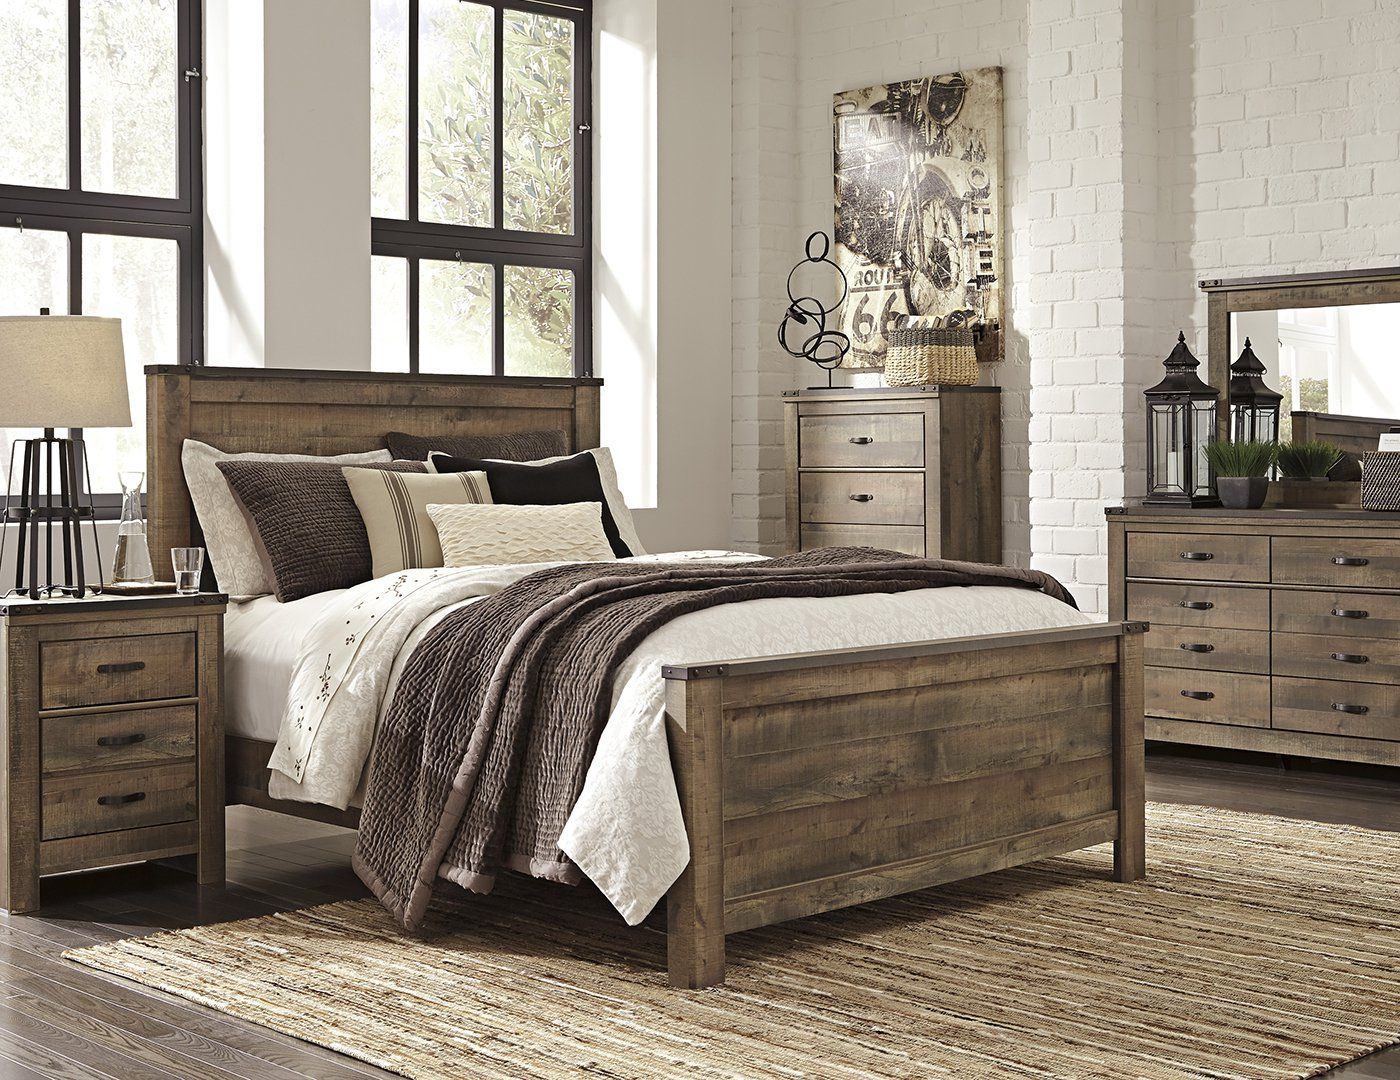 Trinell 5 Pc King Bedroom Set House Pinterest King Bedroom Bedrooms And Master Bedroom